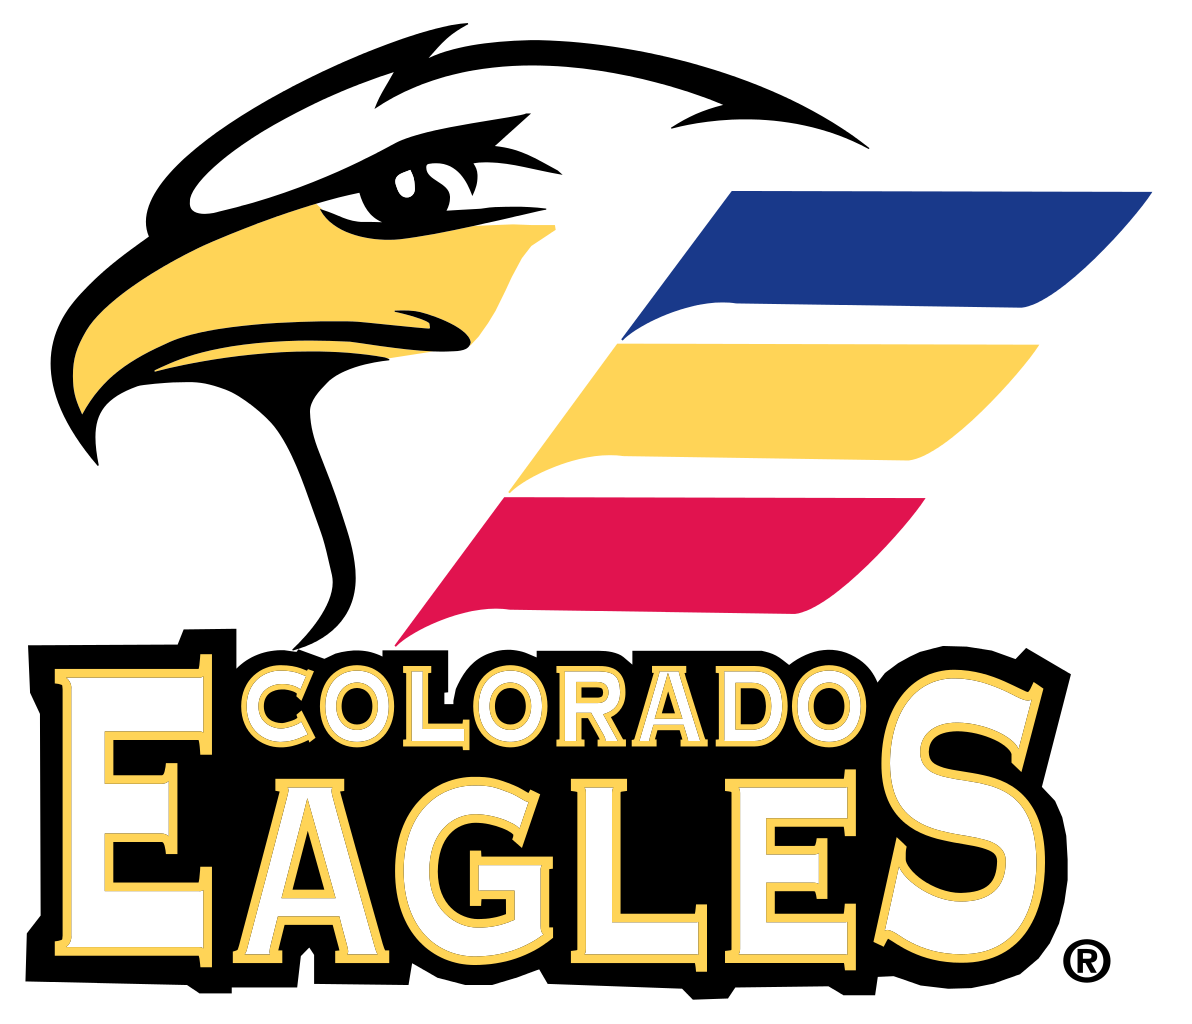 colorado eagles logo png